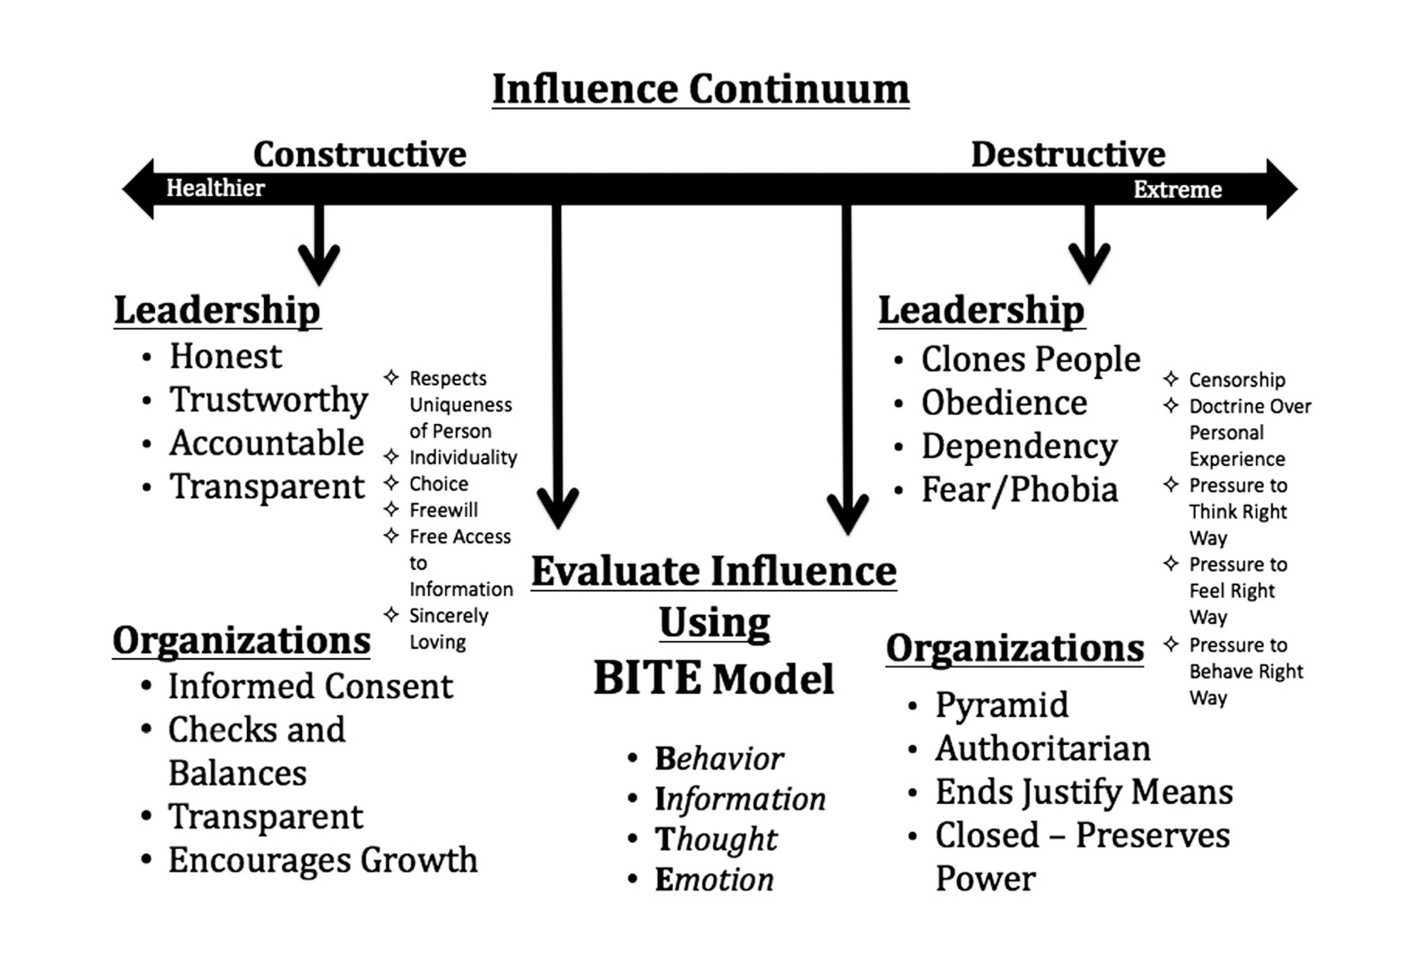 Influence Continuum